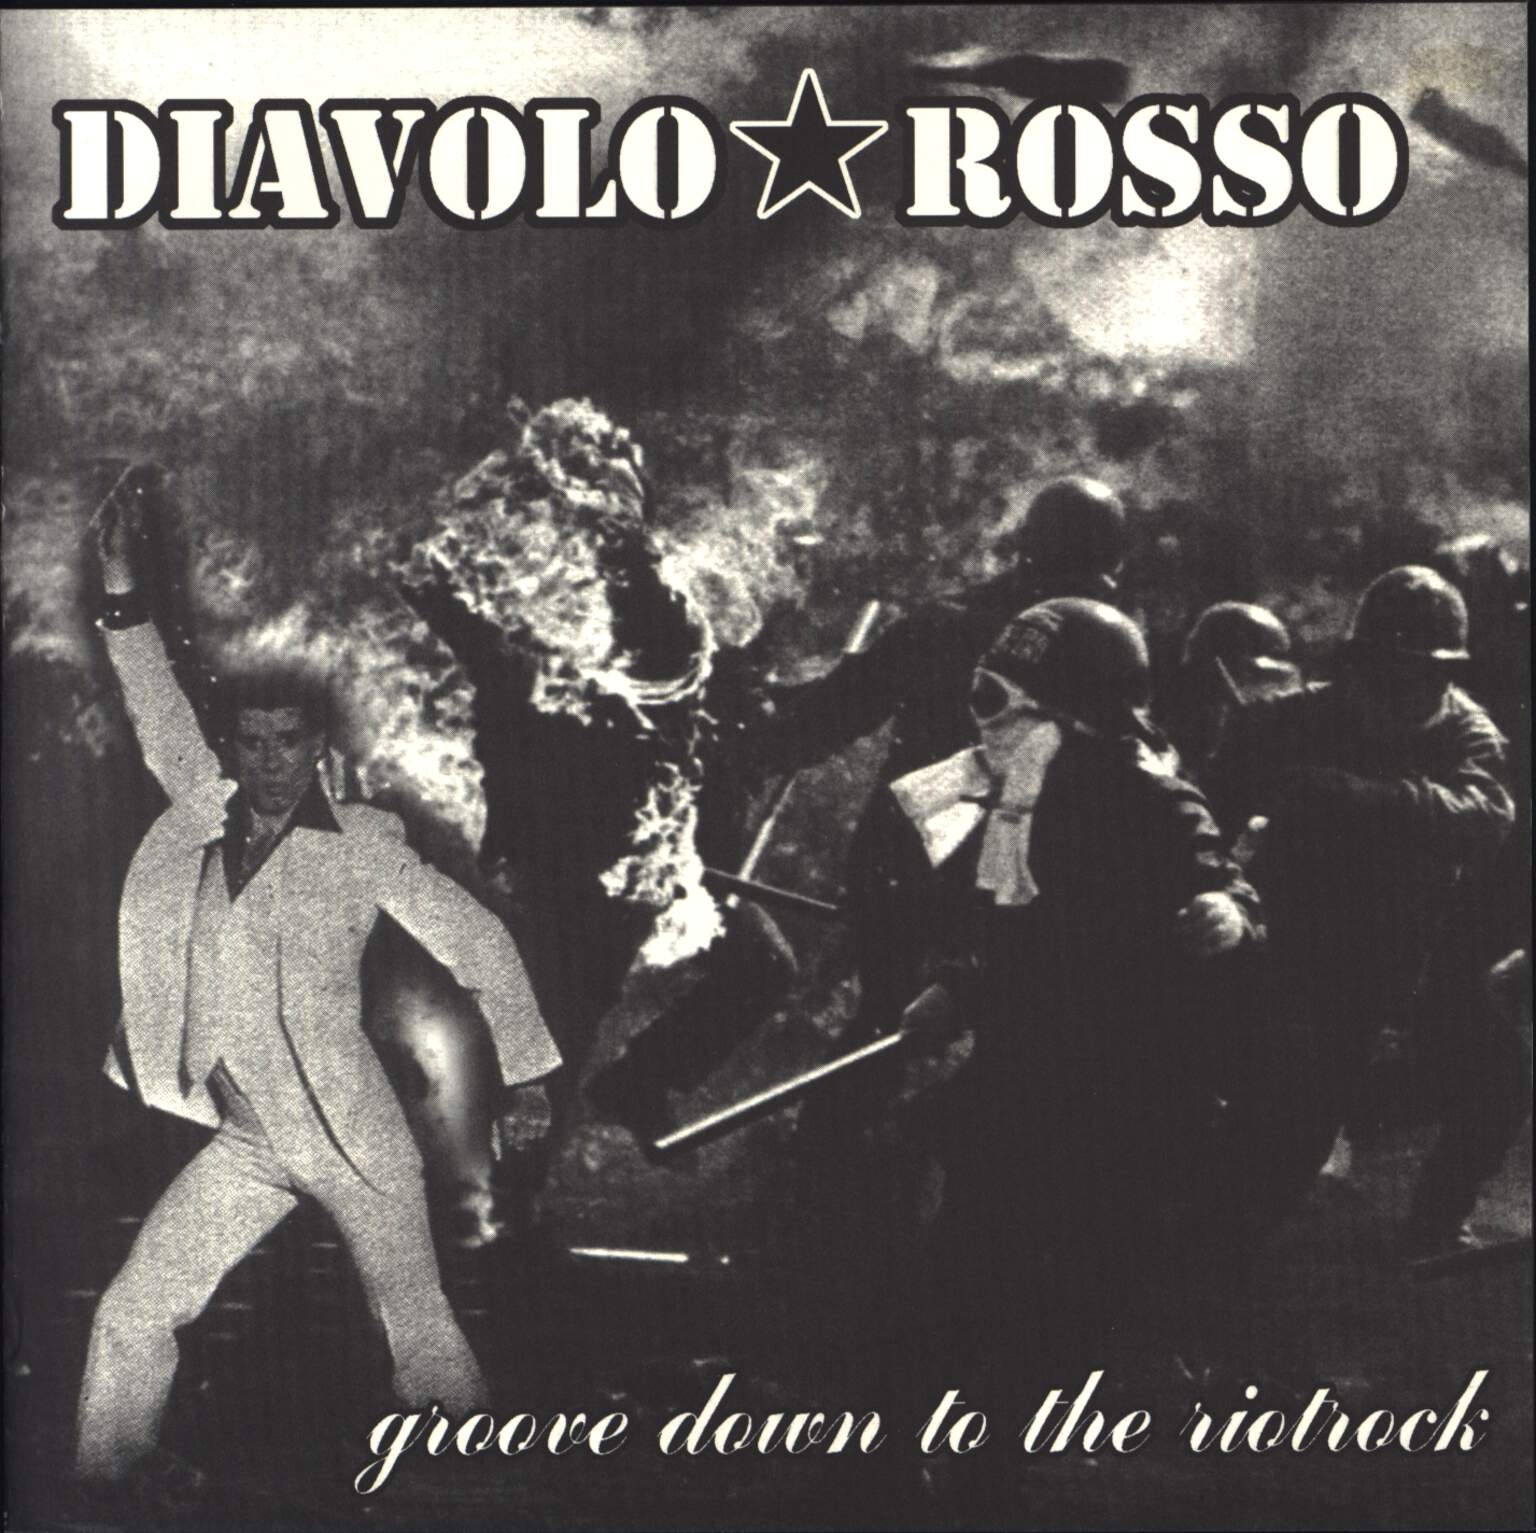 "Diavolo Rosso: Groove Down To The Riotrock, 7"" Single (Vinyl)"